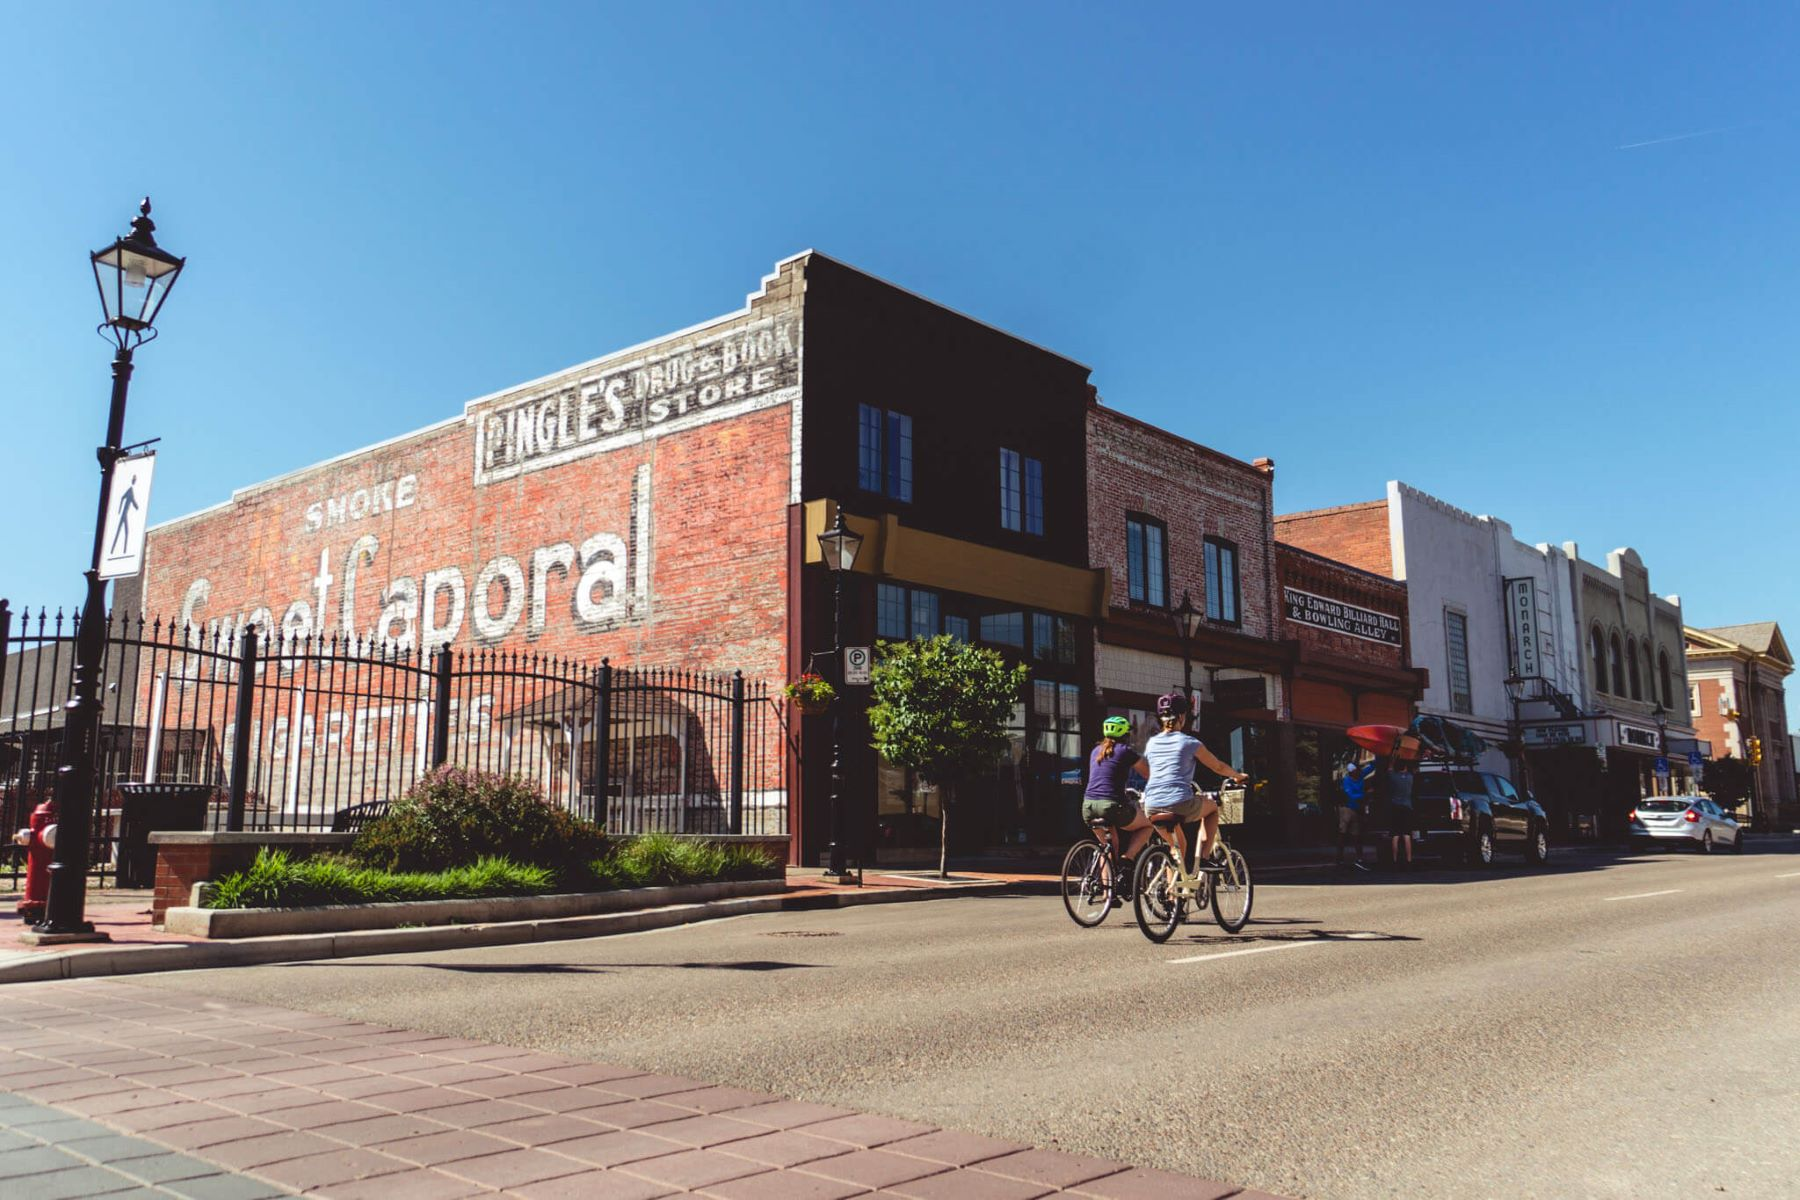 Street scene showing historic buildings and cyclists in Medicine Hat, Alberta.